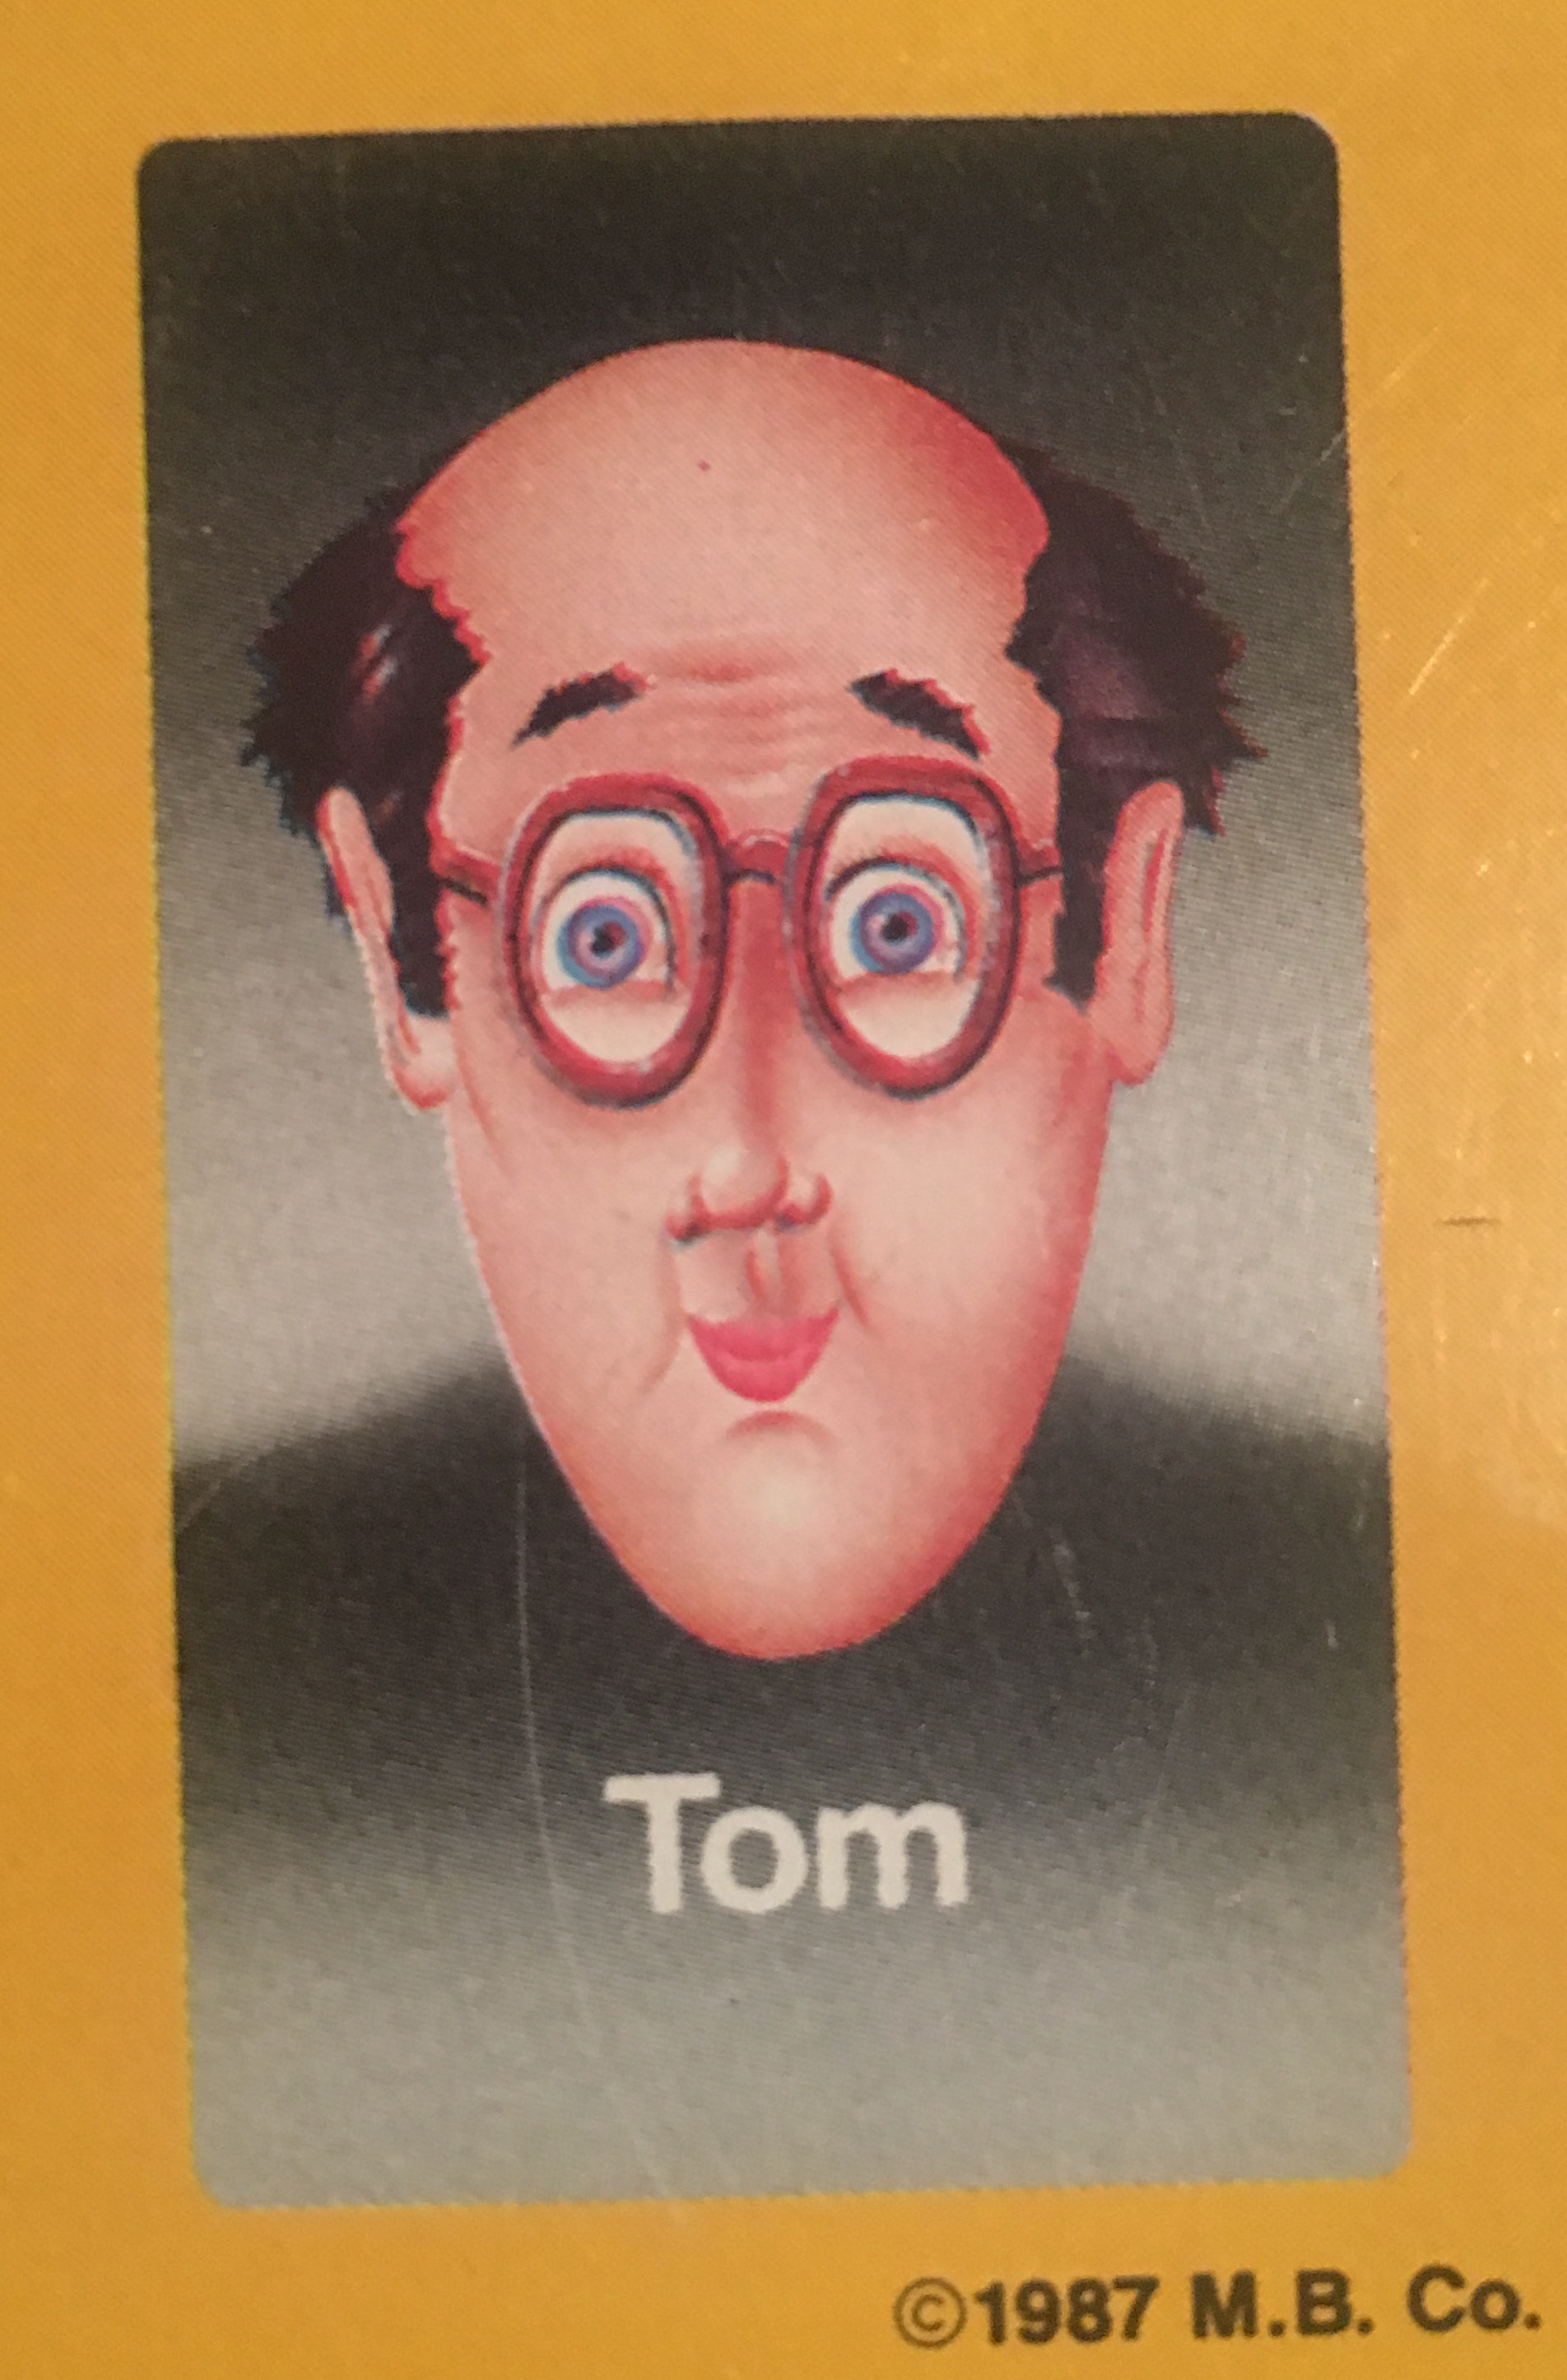 - Tom was always a game enthusiast, which is what landed him the gig as a Guess Who?® face in the first place; he was at Milton Bradley headquarters to protest the newly released Hungry Hungry Hippos game, as he had been injured during some particularly intense gameplay the night before. They offered him a Guess Who?® game card position in exchange for his silence, and he enthusiastically accepted. In the years since, he has gone into semi-retirement, spending most of his time on the Magic: The Gathering Pro Tour.